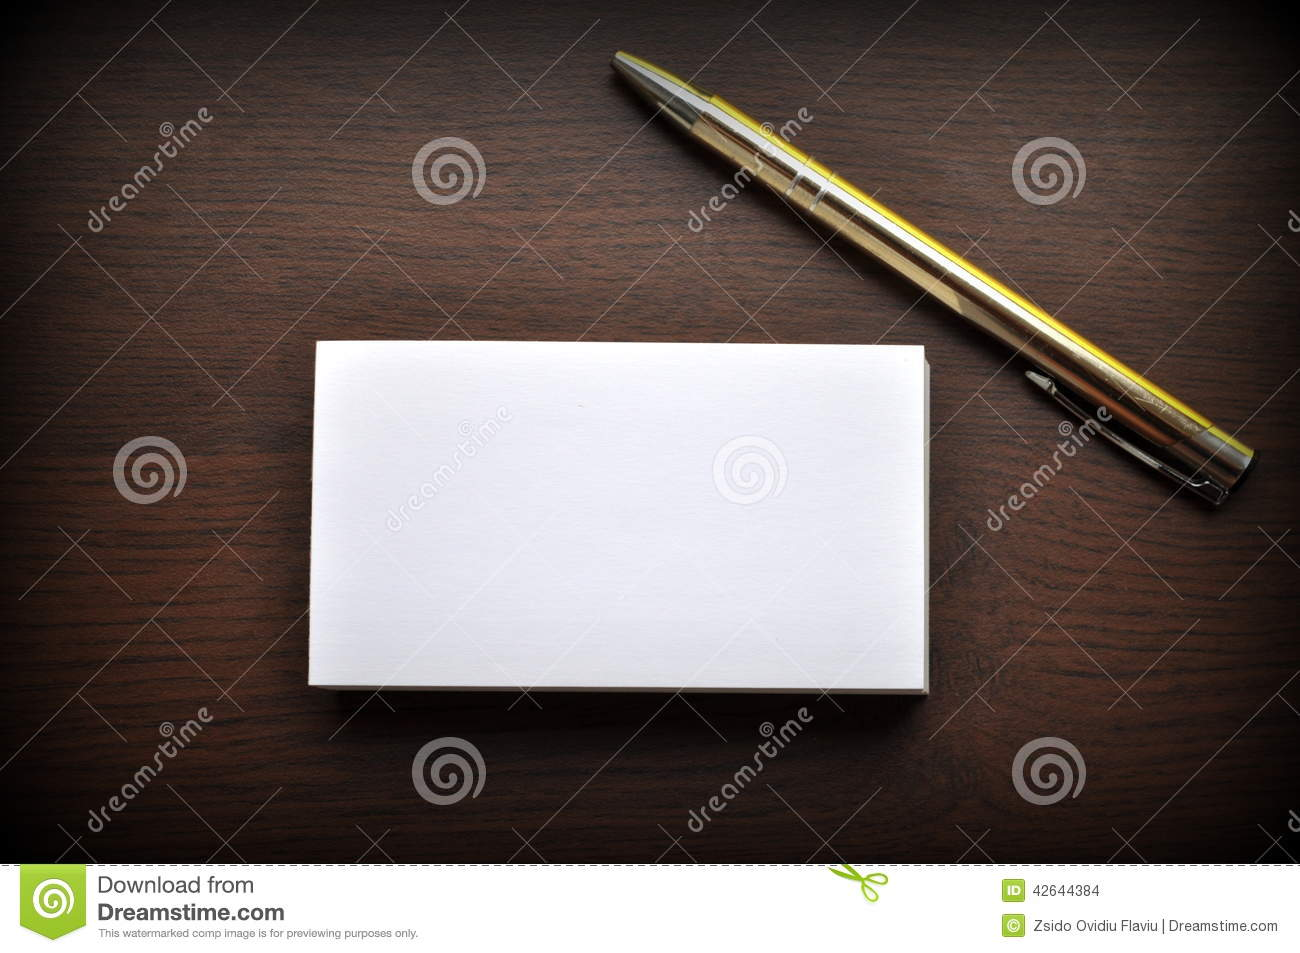 Blank Business Cards stock photo. Image of logo, corporate - 42644384